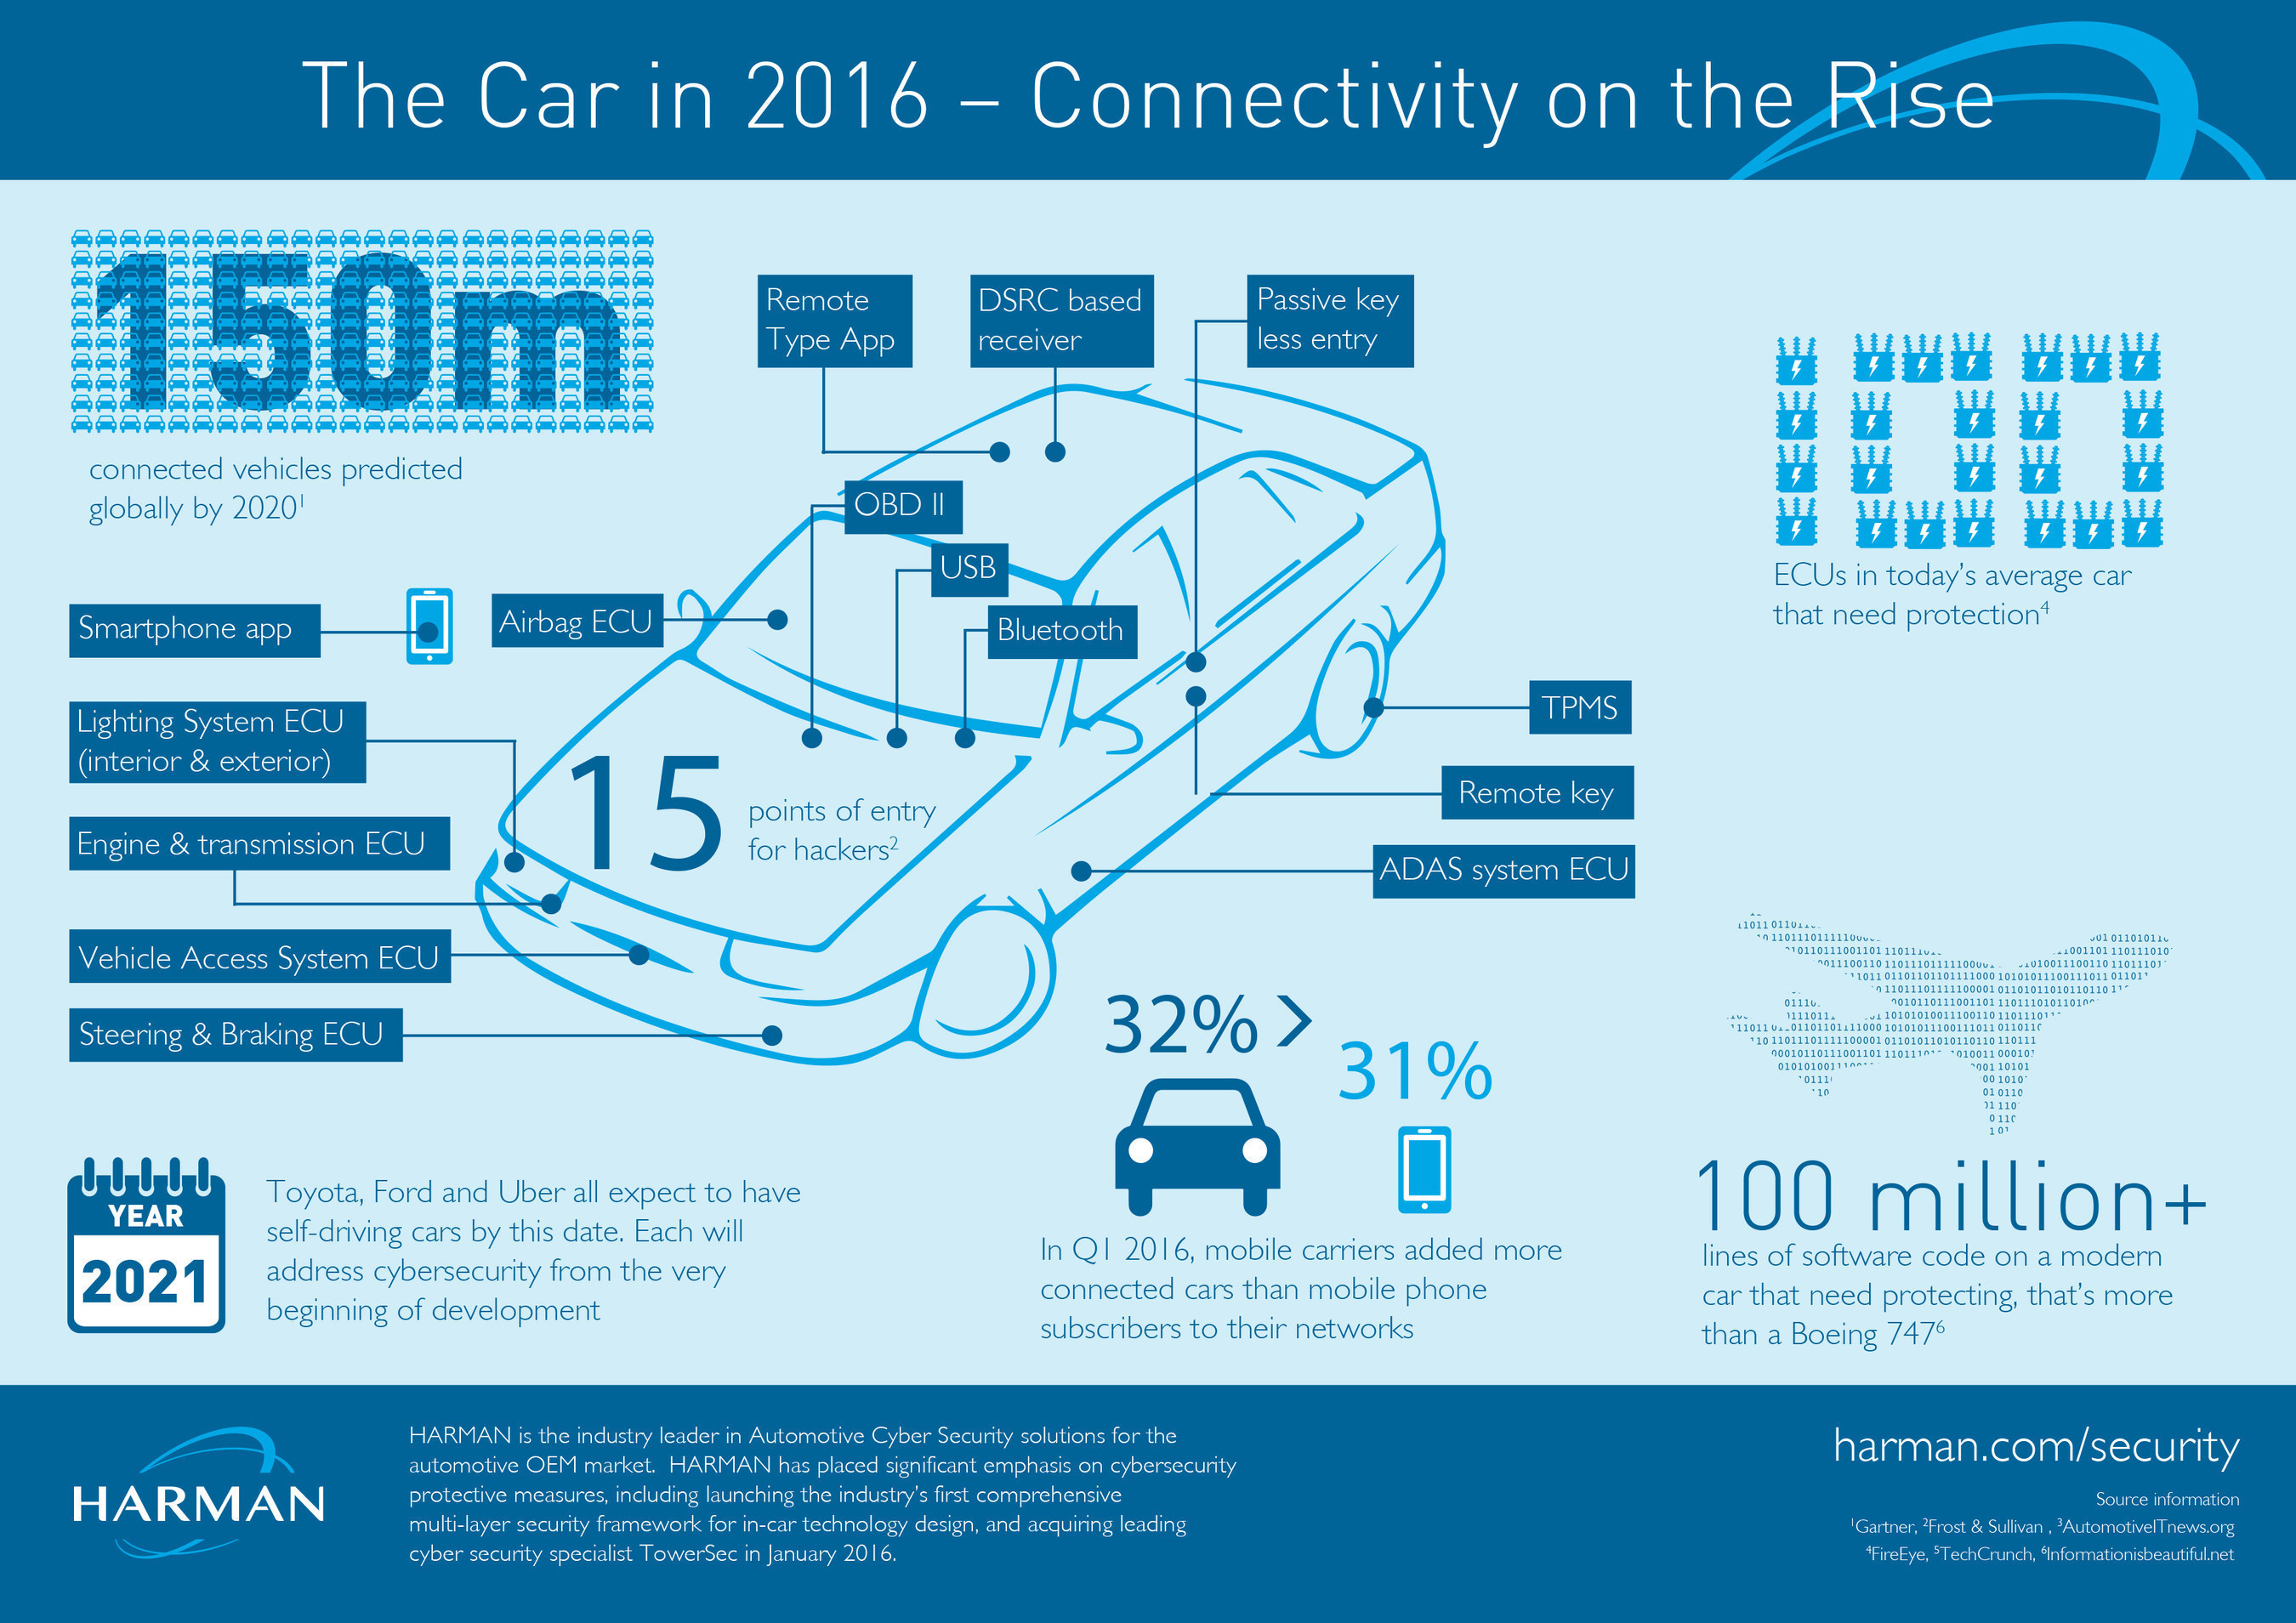 Connectivity on the Rise - The Connected Car in 2016, a HARMAN Infographic.